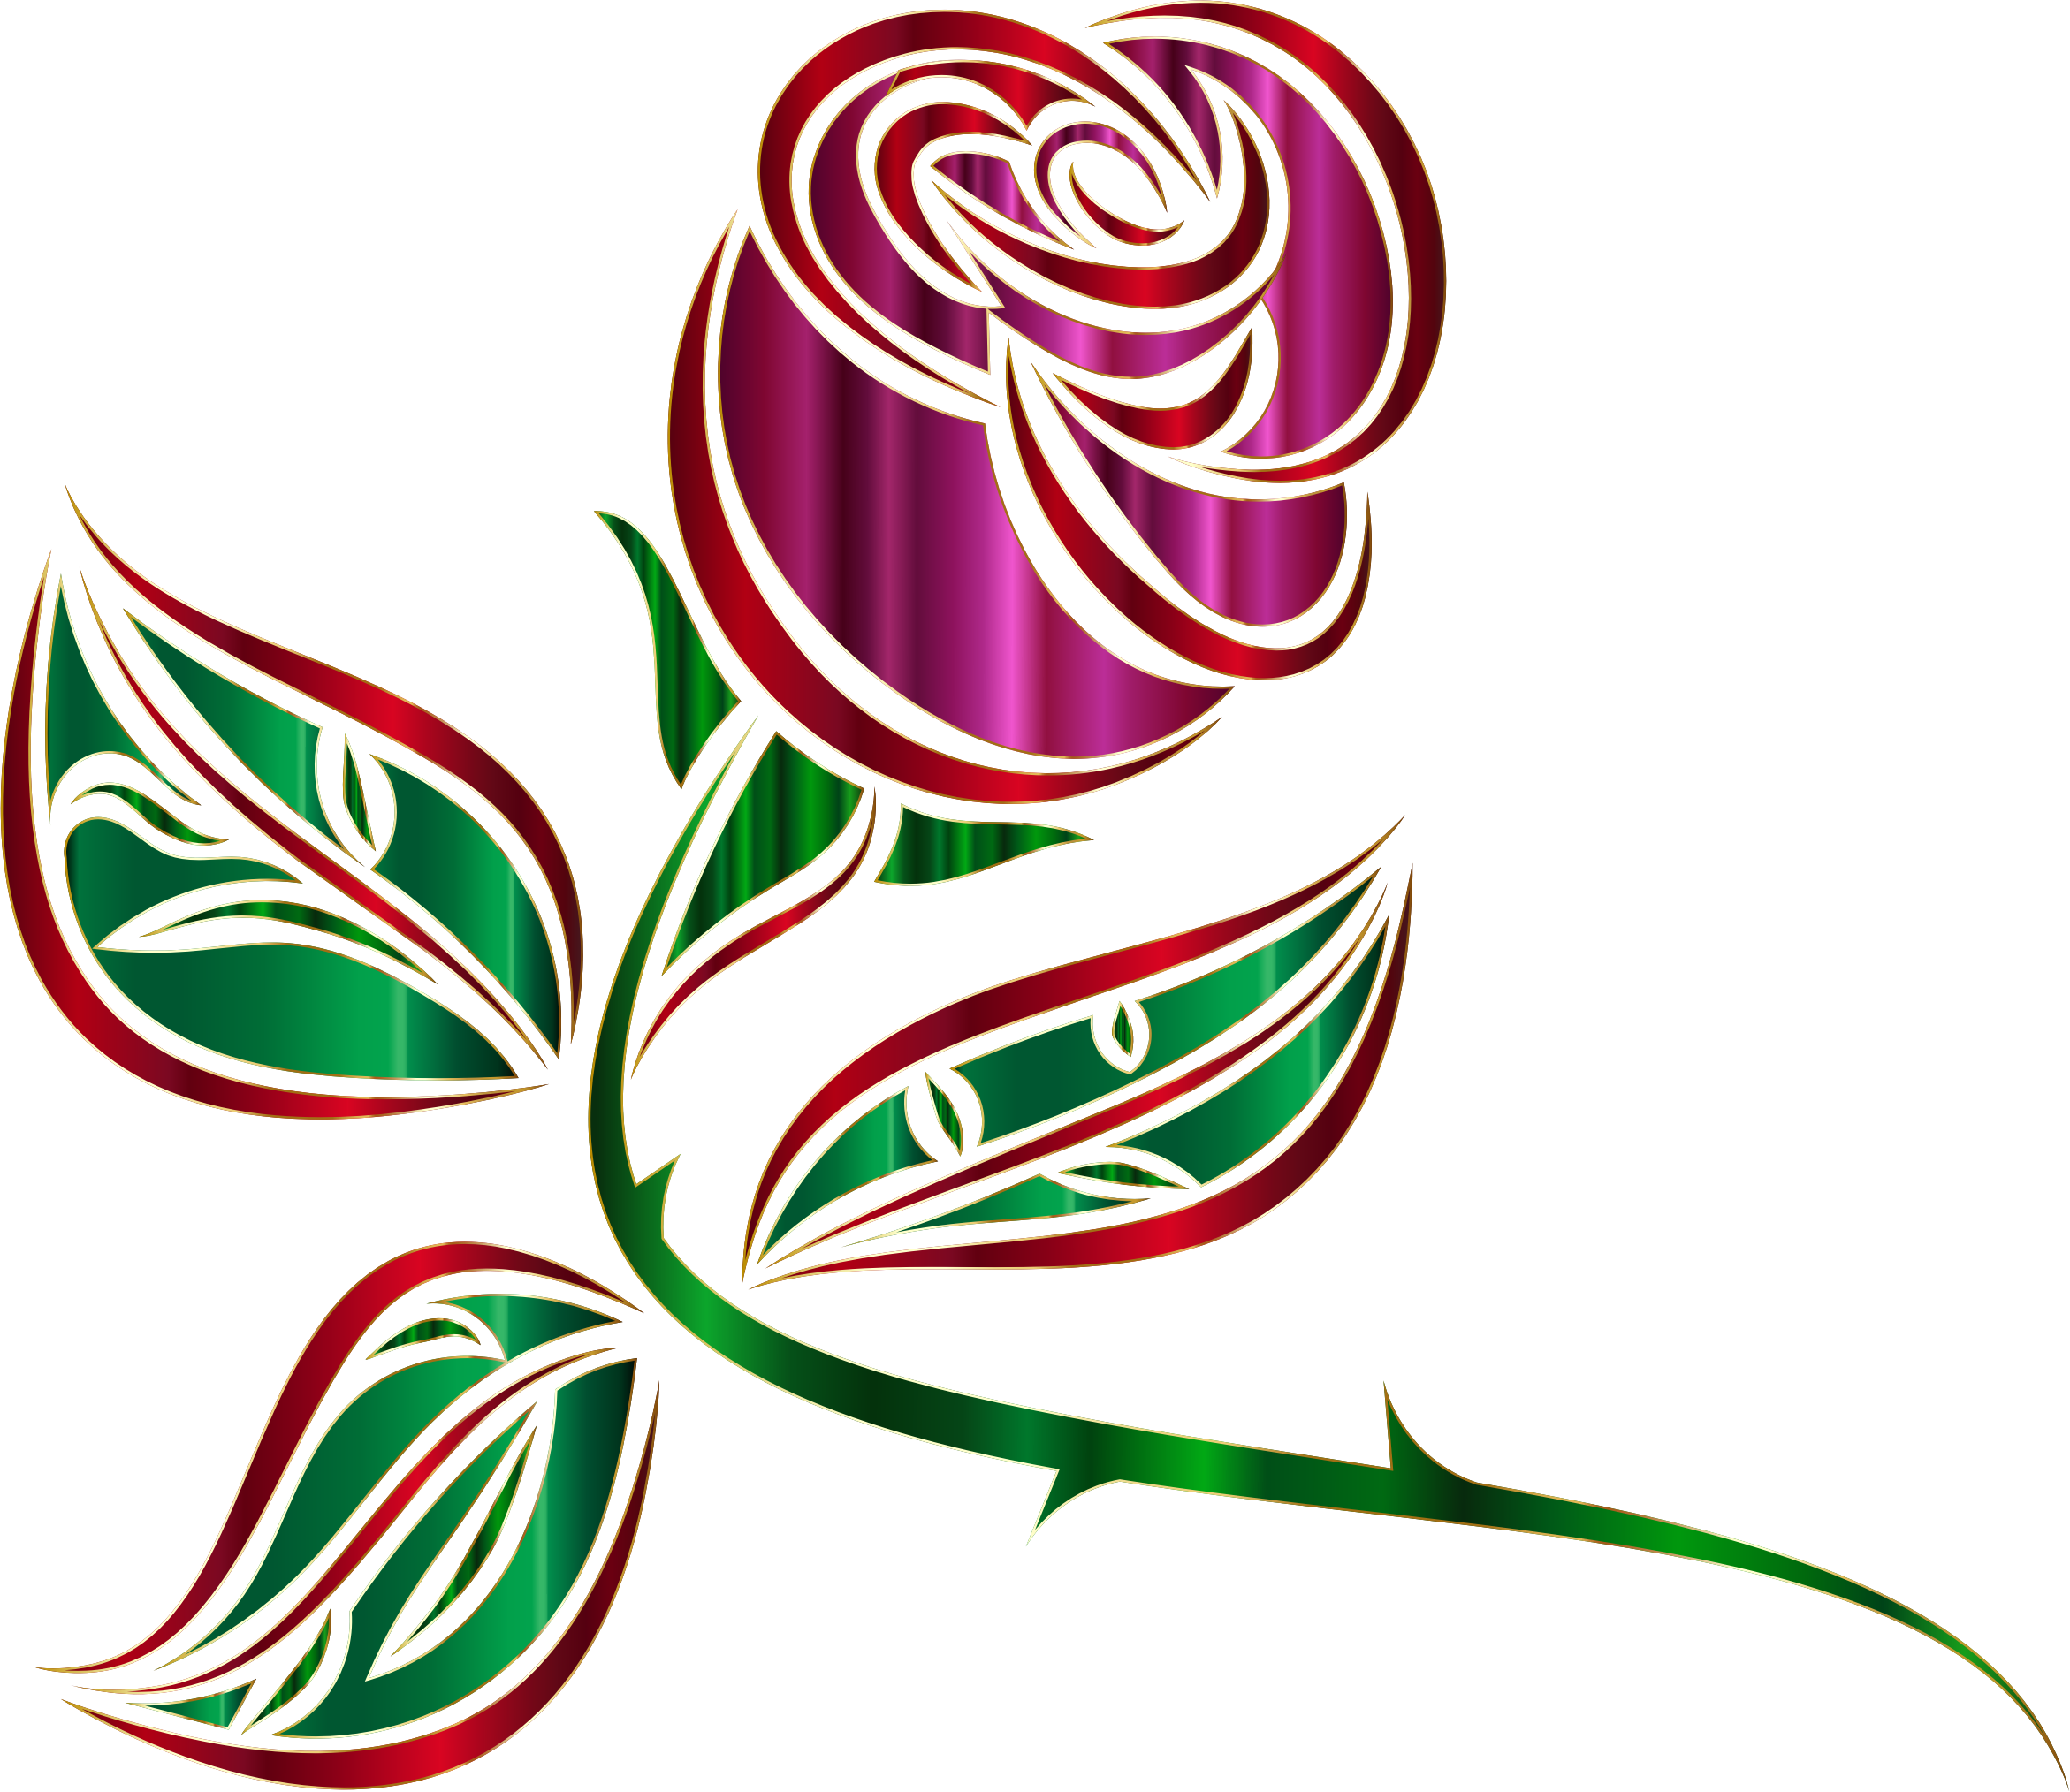 Stylized Rose Extended Minus Background by GDJ